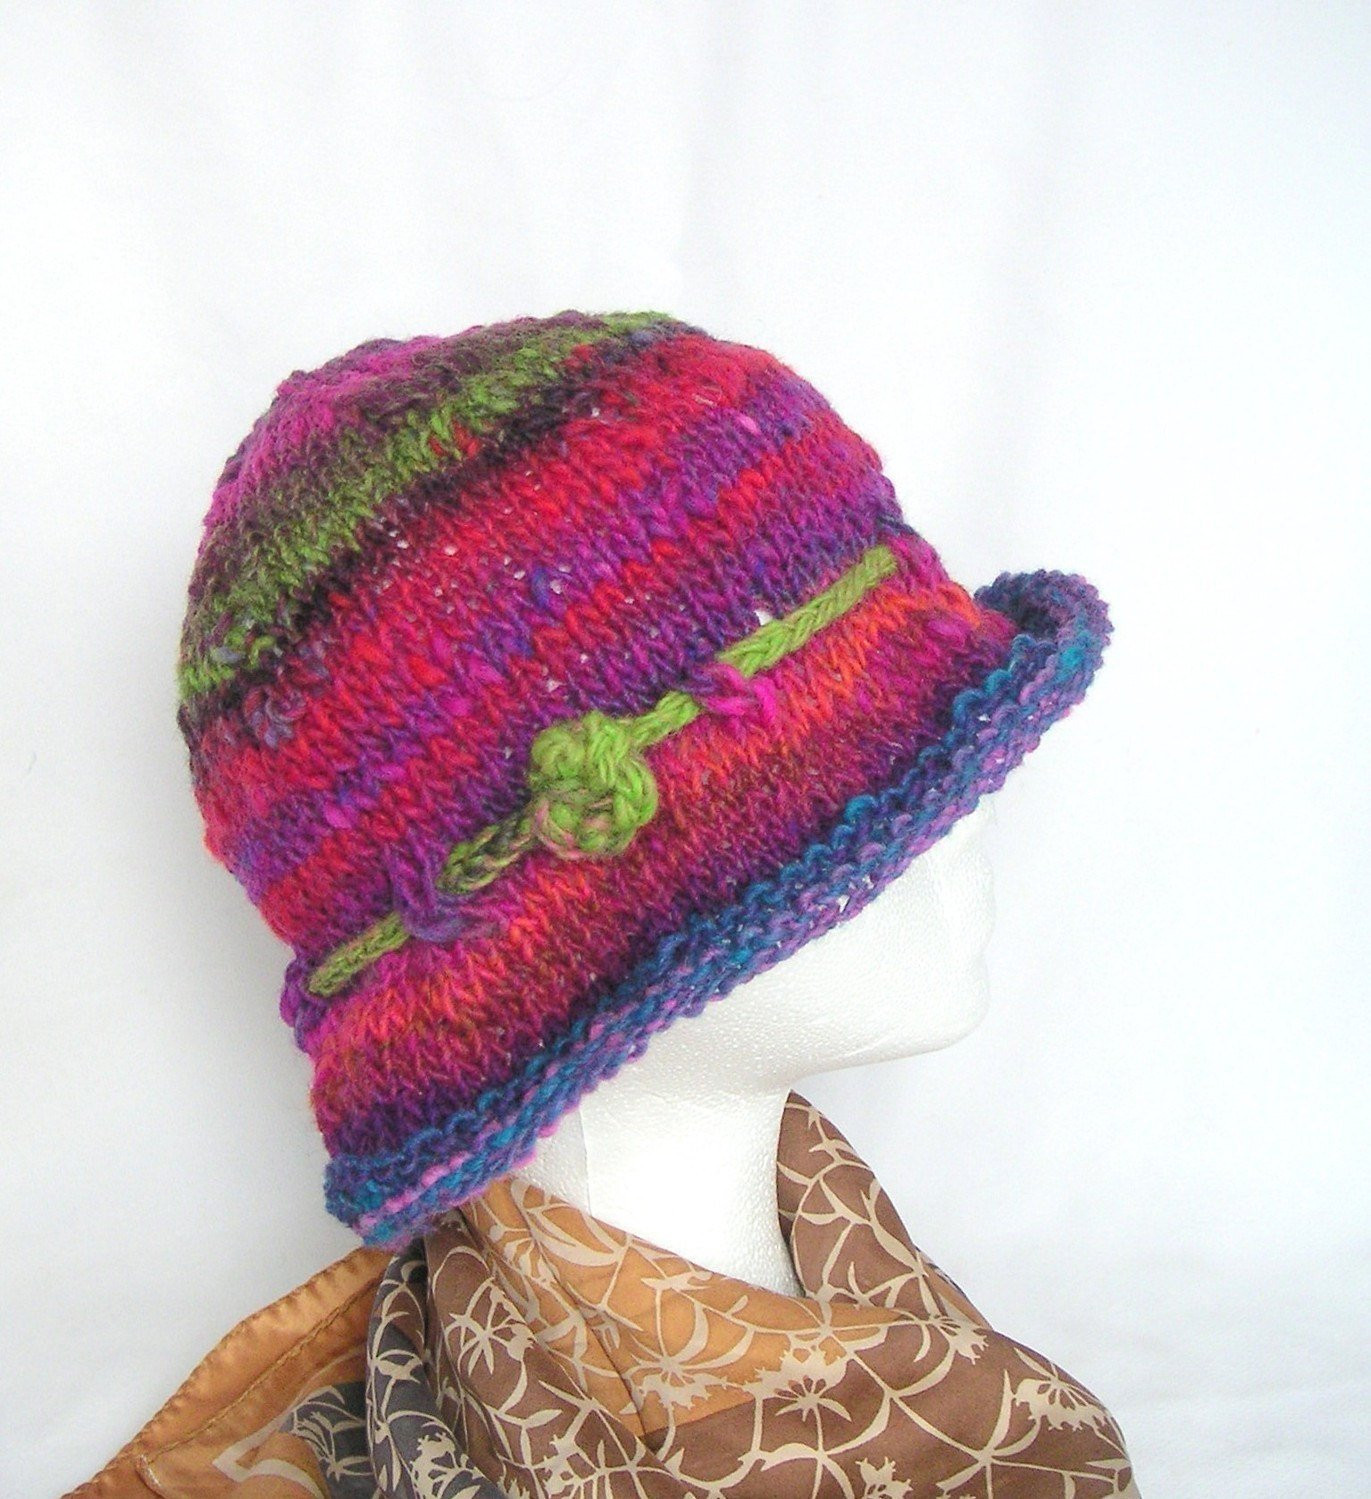 Free Hat Knitting Patterns Unique Easy Hat Knitting Patterns Pattern Collections Of Unique 45 Pictures Free Hat Knitting Patterns